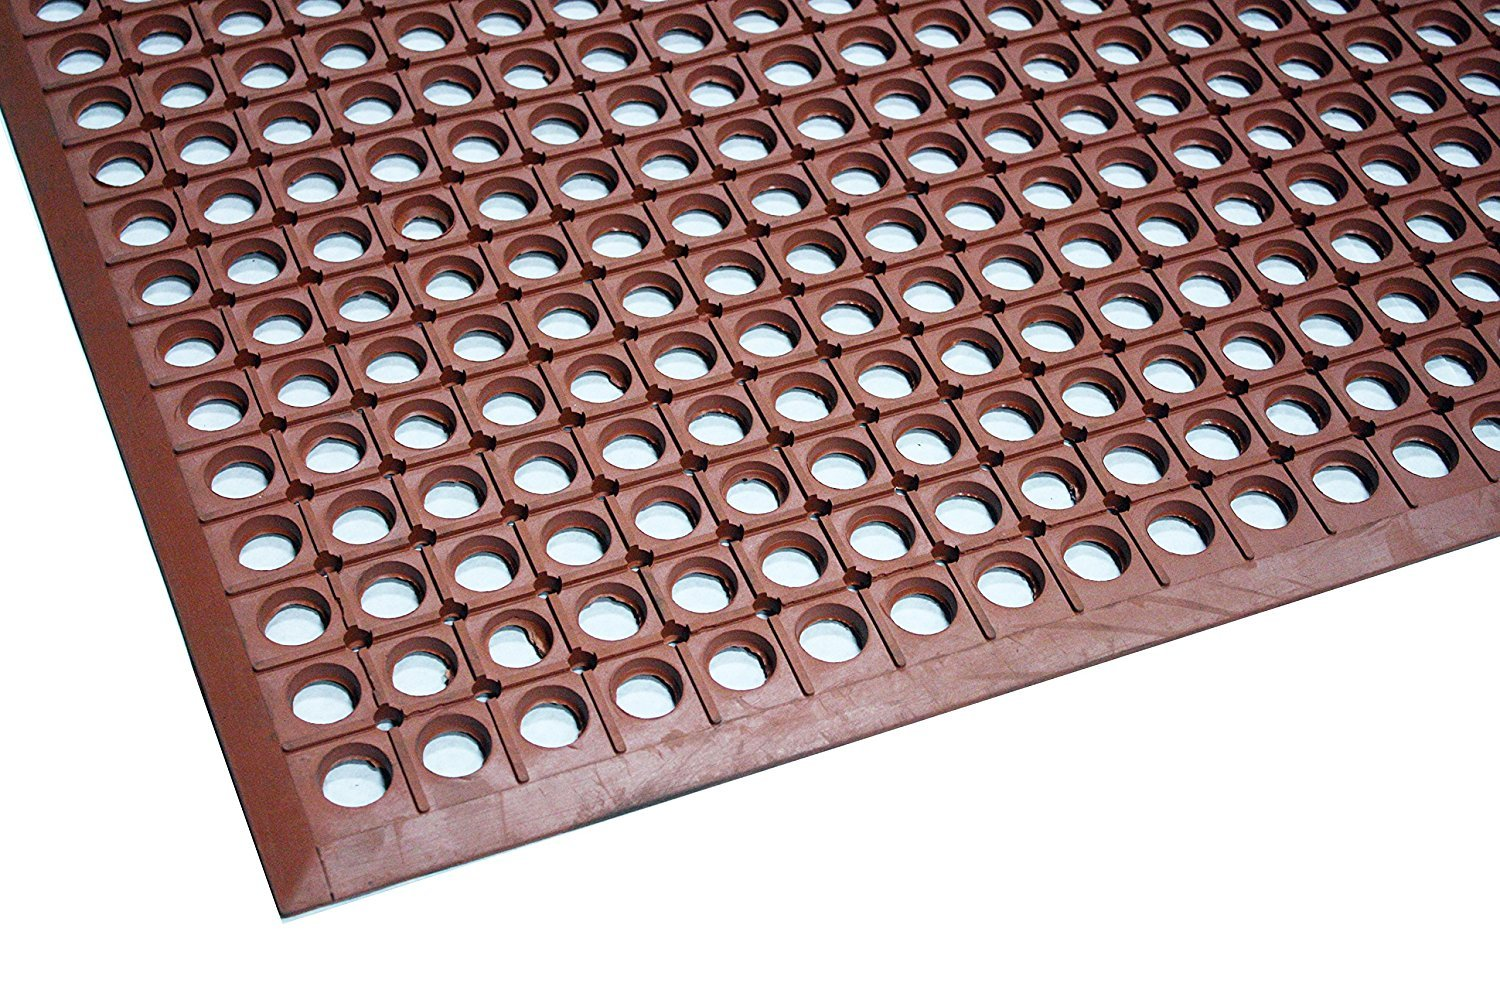 Durable Workstation Light Rubber Anti-Fatigue Drainage Mat for Wet Areas 3 x 5 Red